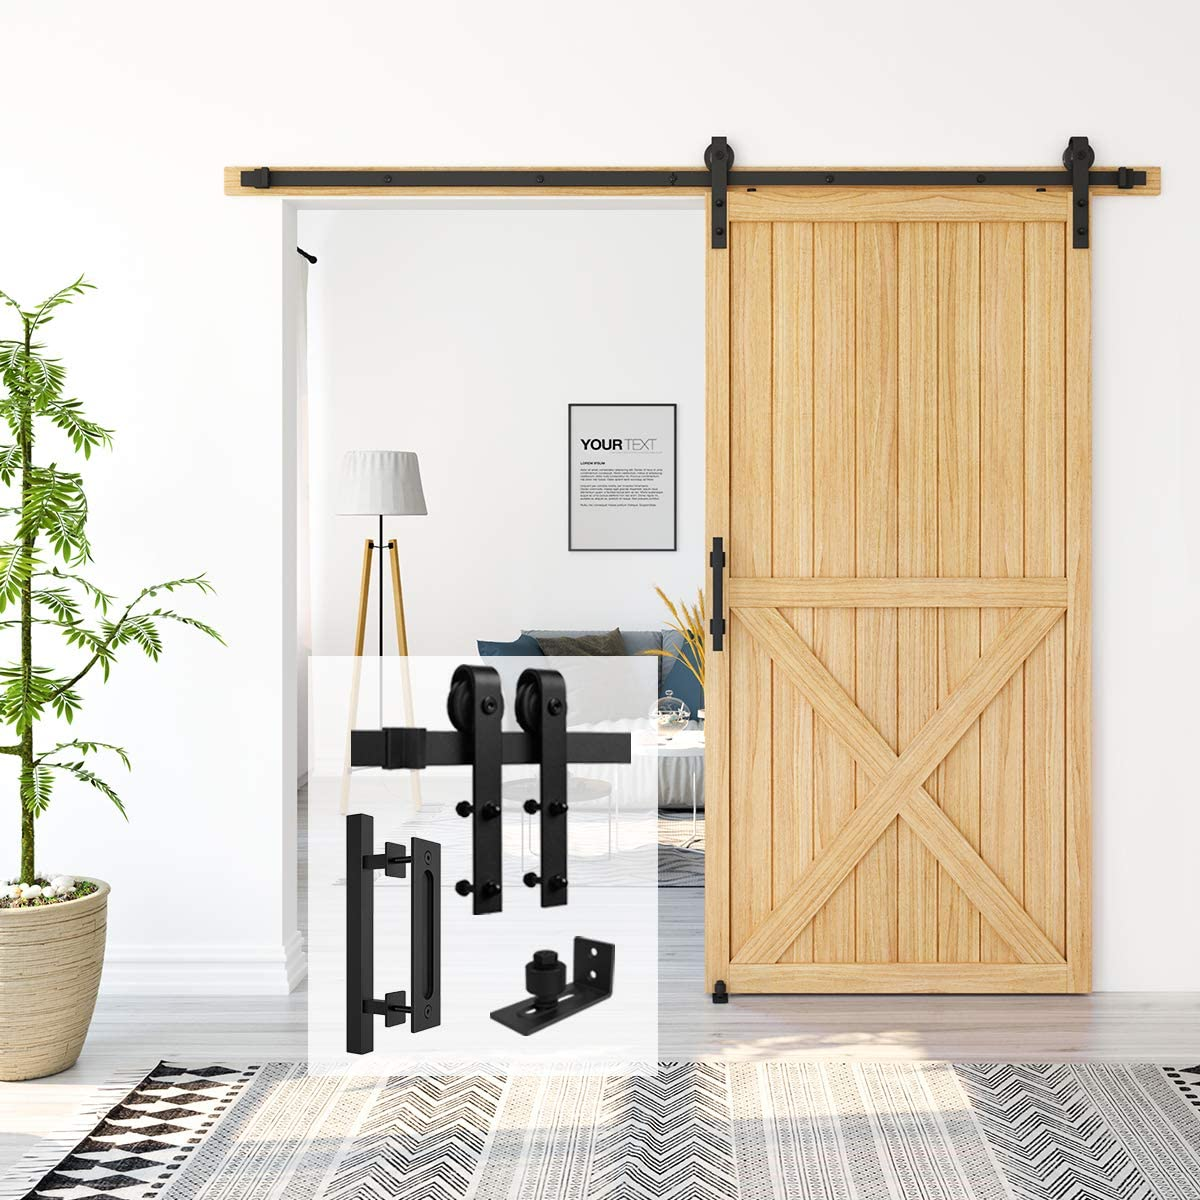 Homlux 8ft Heavy Duty Sturdy Sliding Barn Door Hardware Kit Single Door Whole Set Include 1x Square Door Handle, 1x Floor Guide - Fit 1 3/8-1 3/4